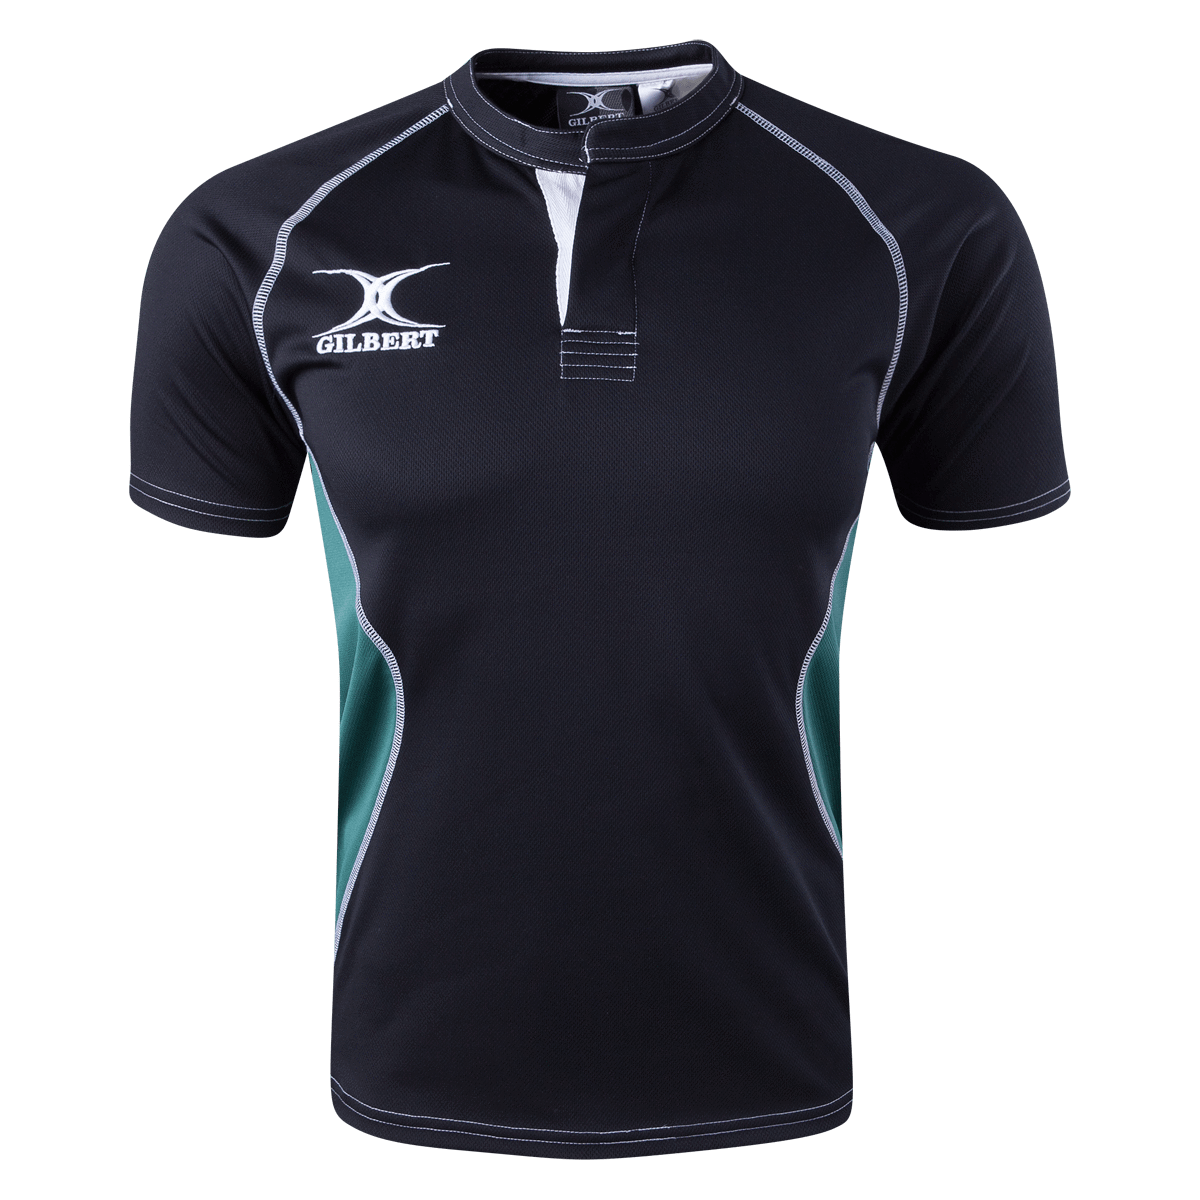 Gilbert Black/Green Youth Xact V2 Rugby Jersey Front